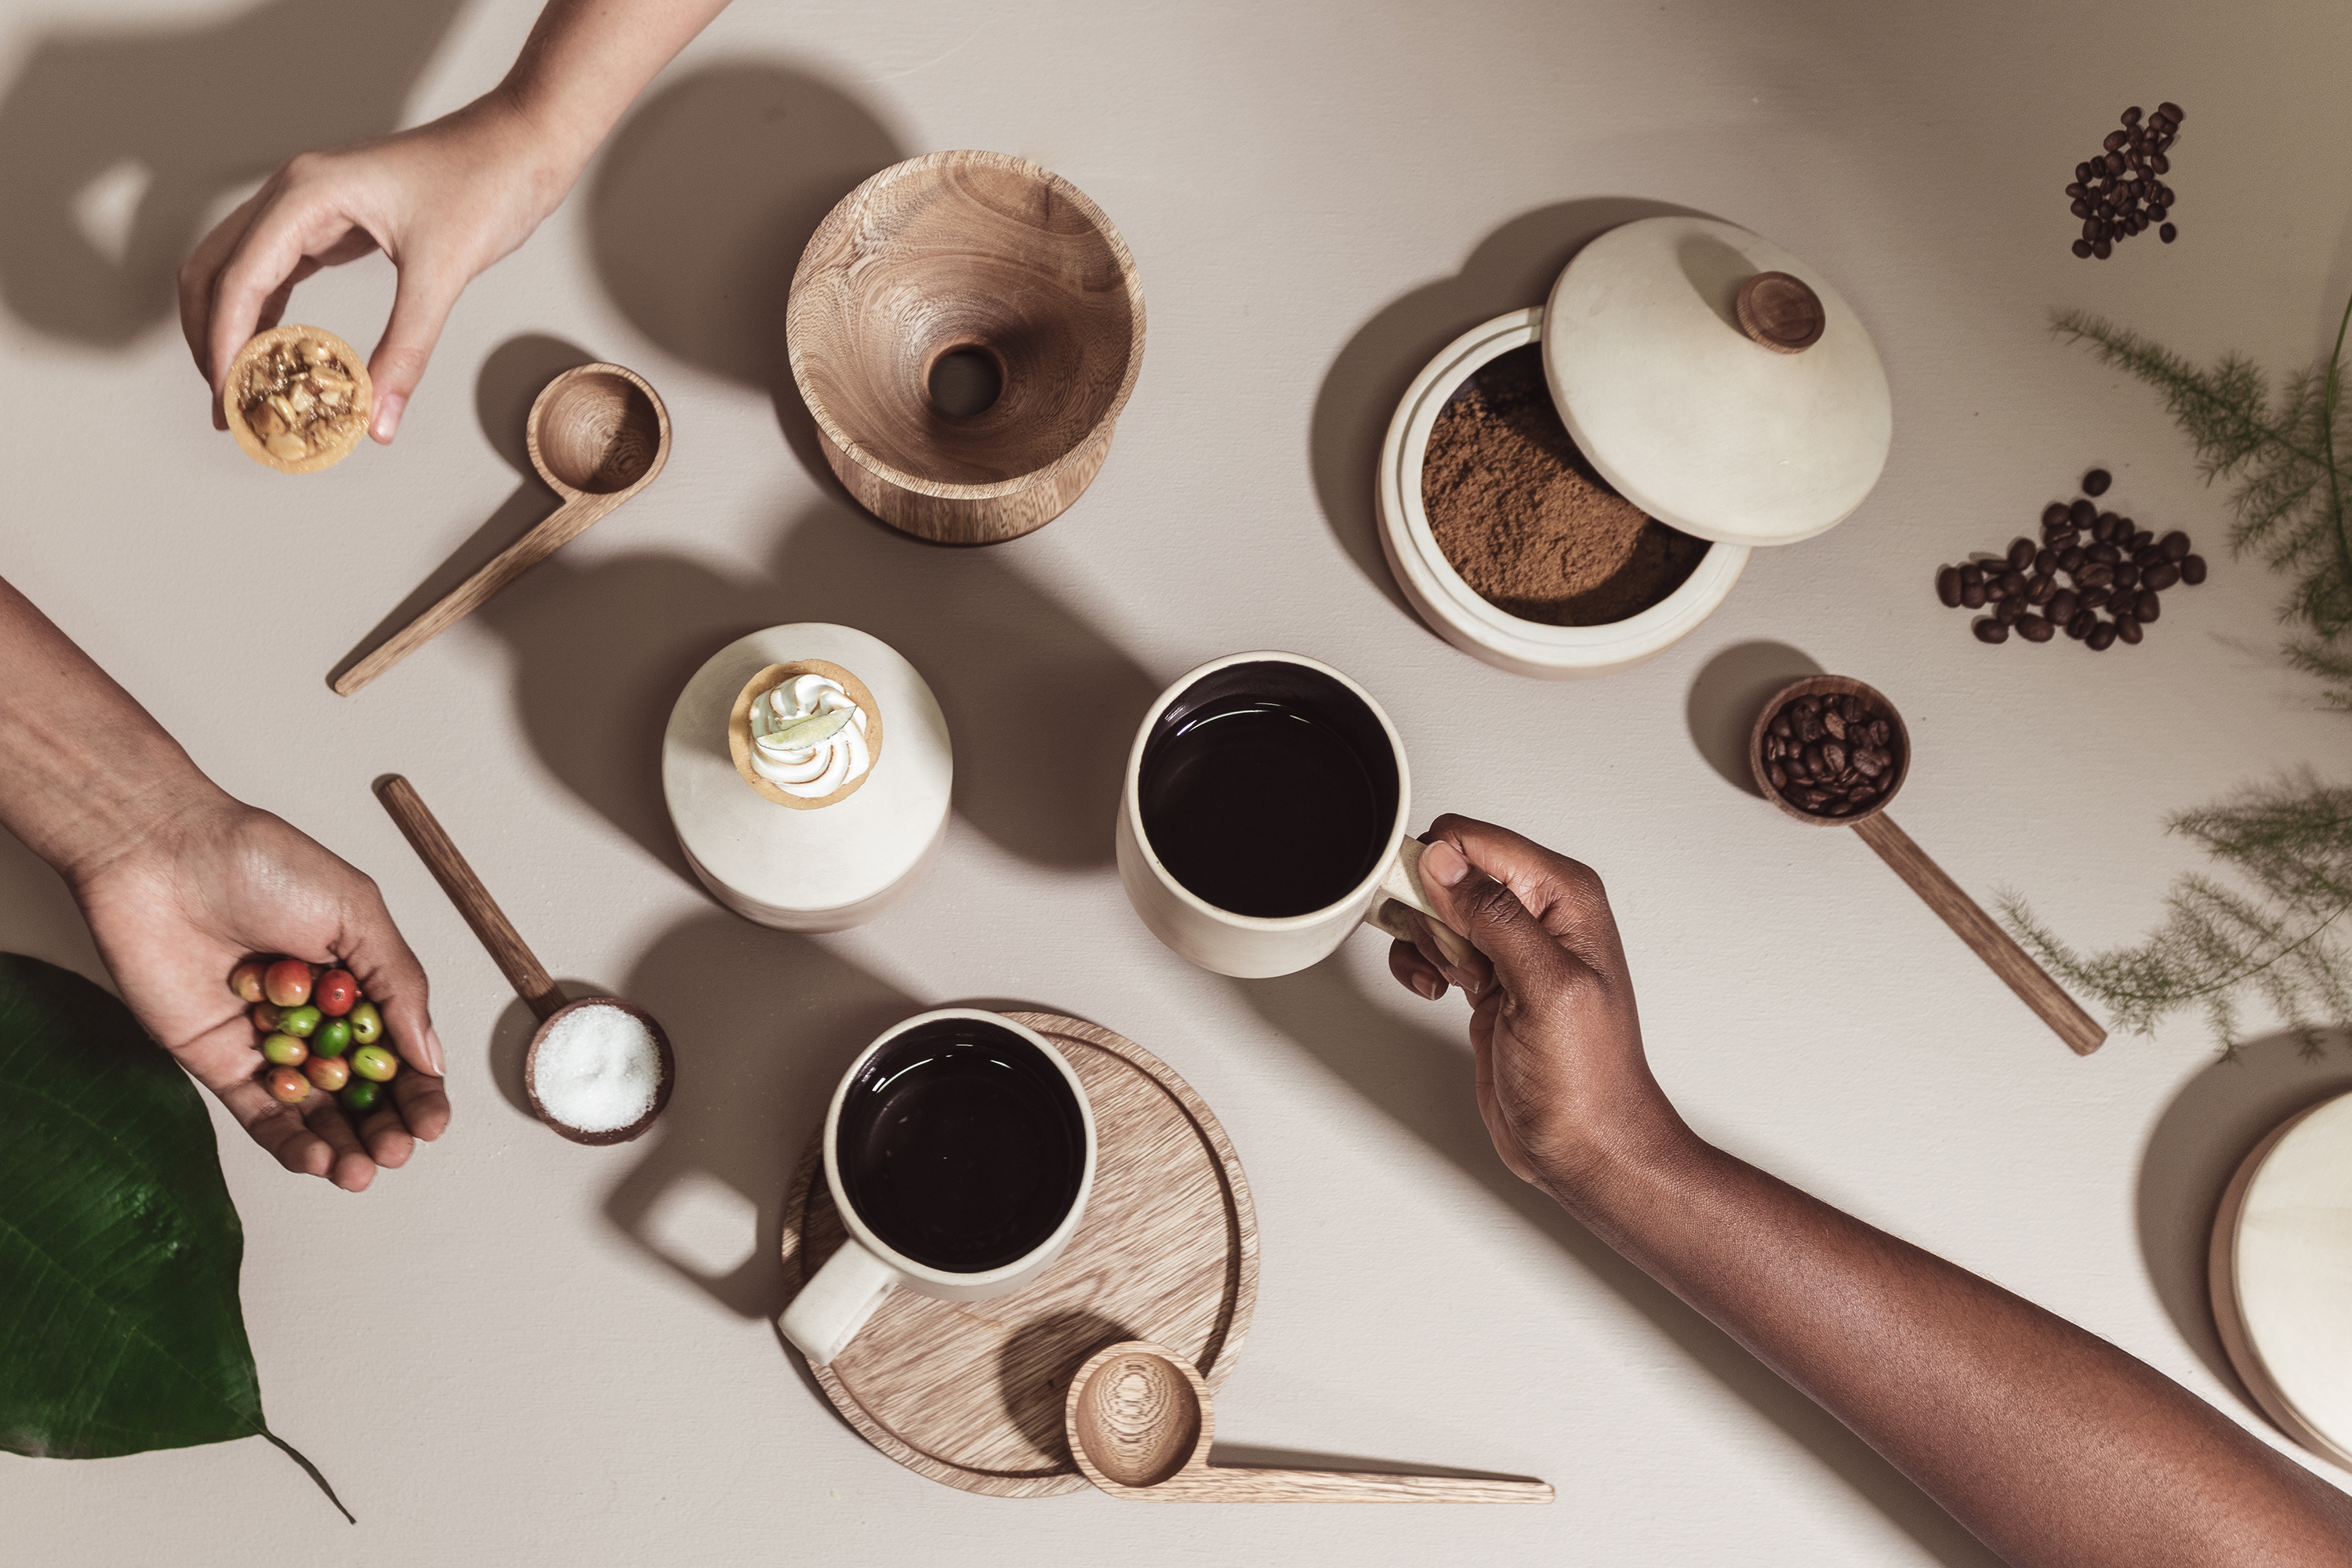 Gorgeous home goods collection celebrates the rituals of coffee